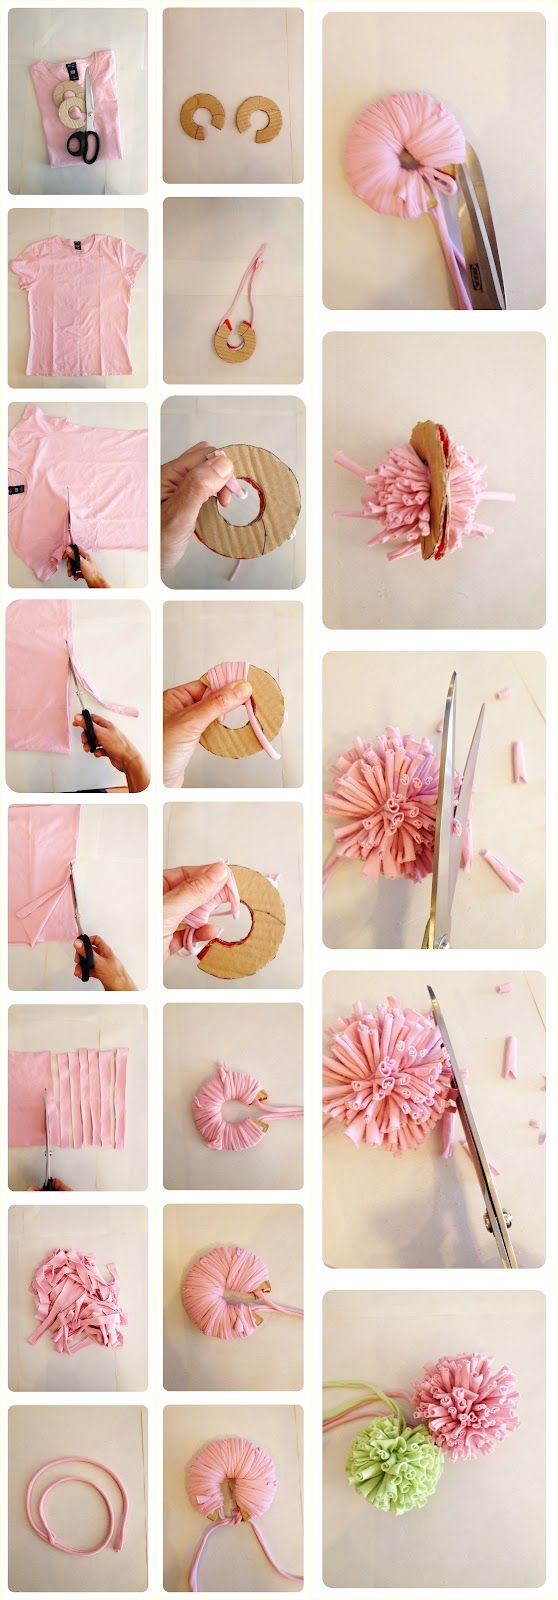 {How to Make a Pom Pom with a Recycled T-shirt}